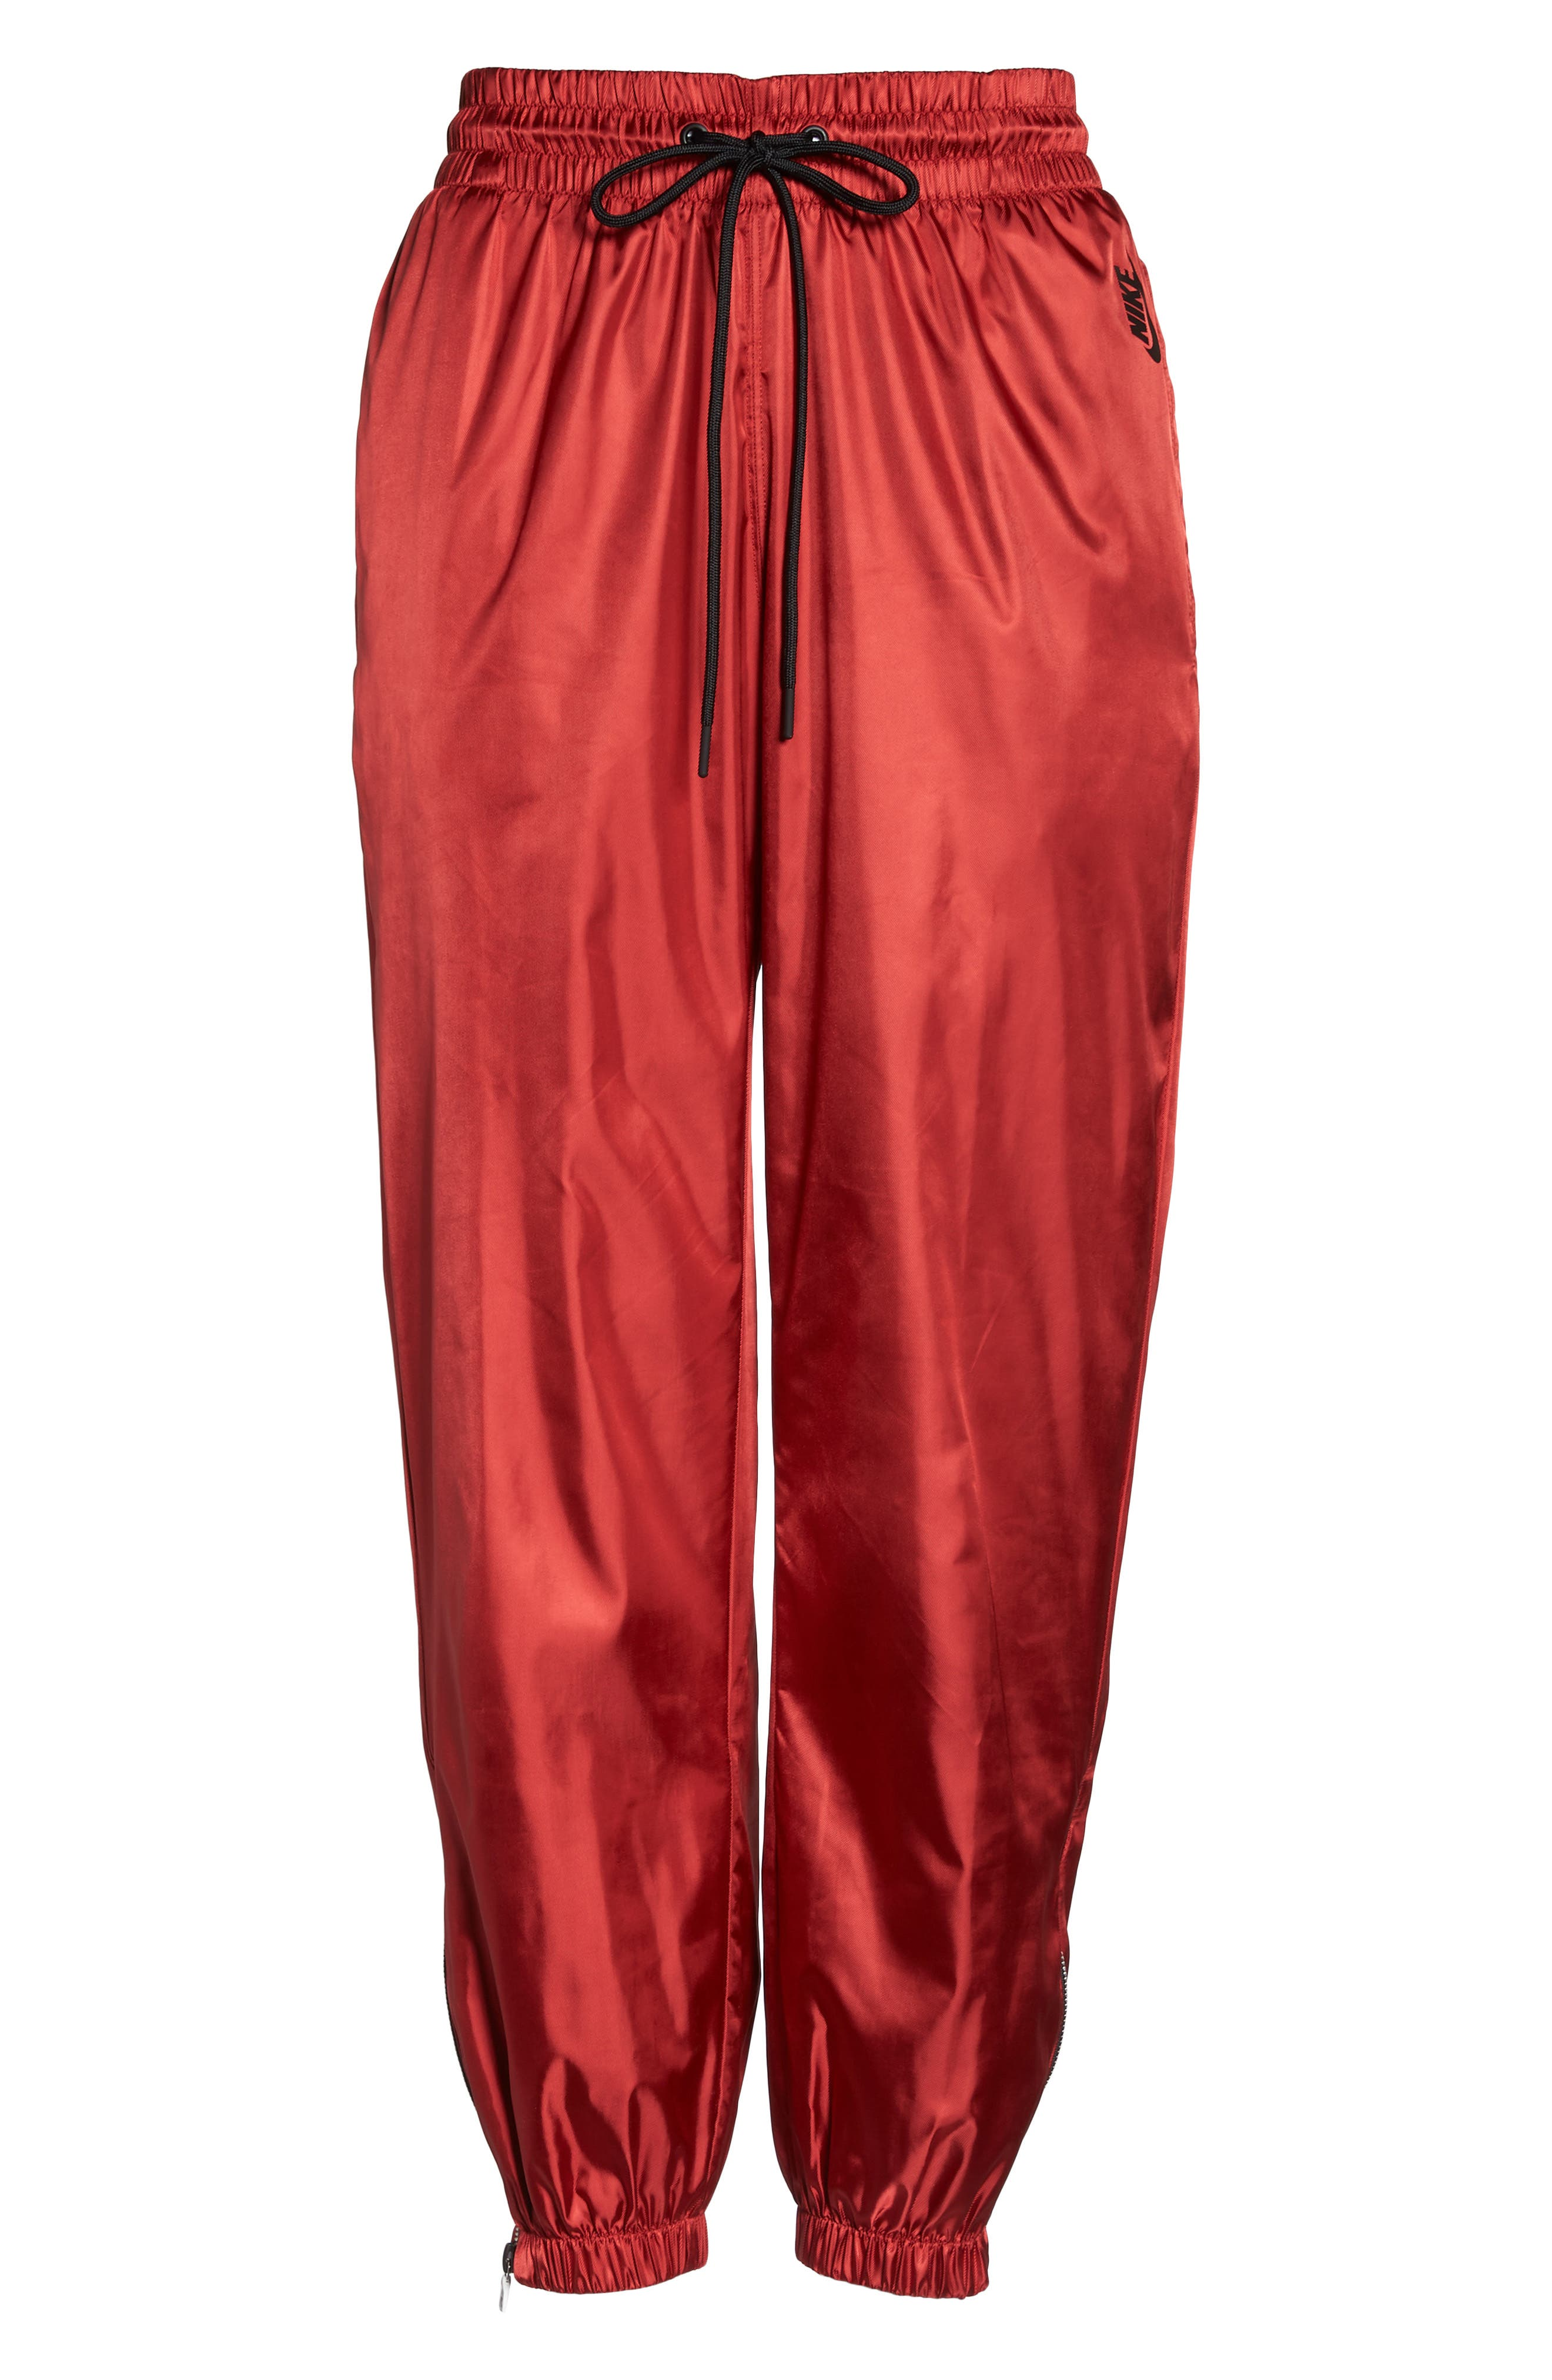 NikeLab Collection Women's Satin Track Pants,                             Alternate thumbnail 8, color,                             Gym Red/ Black